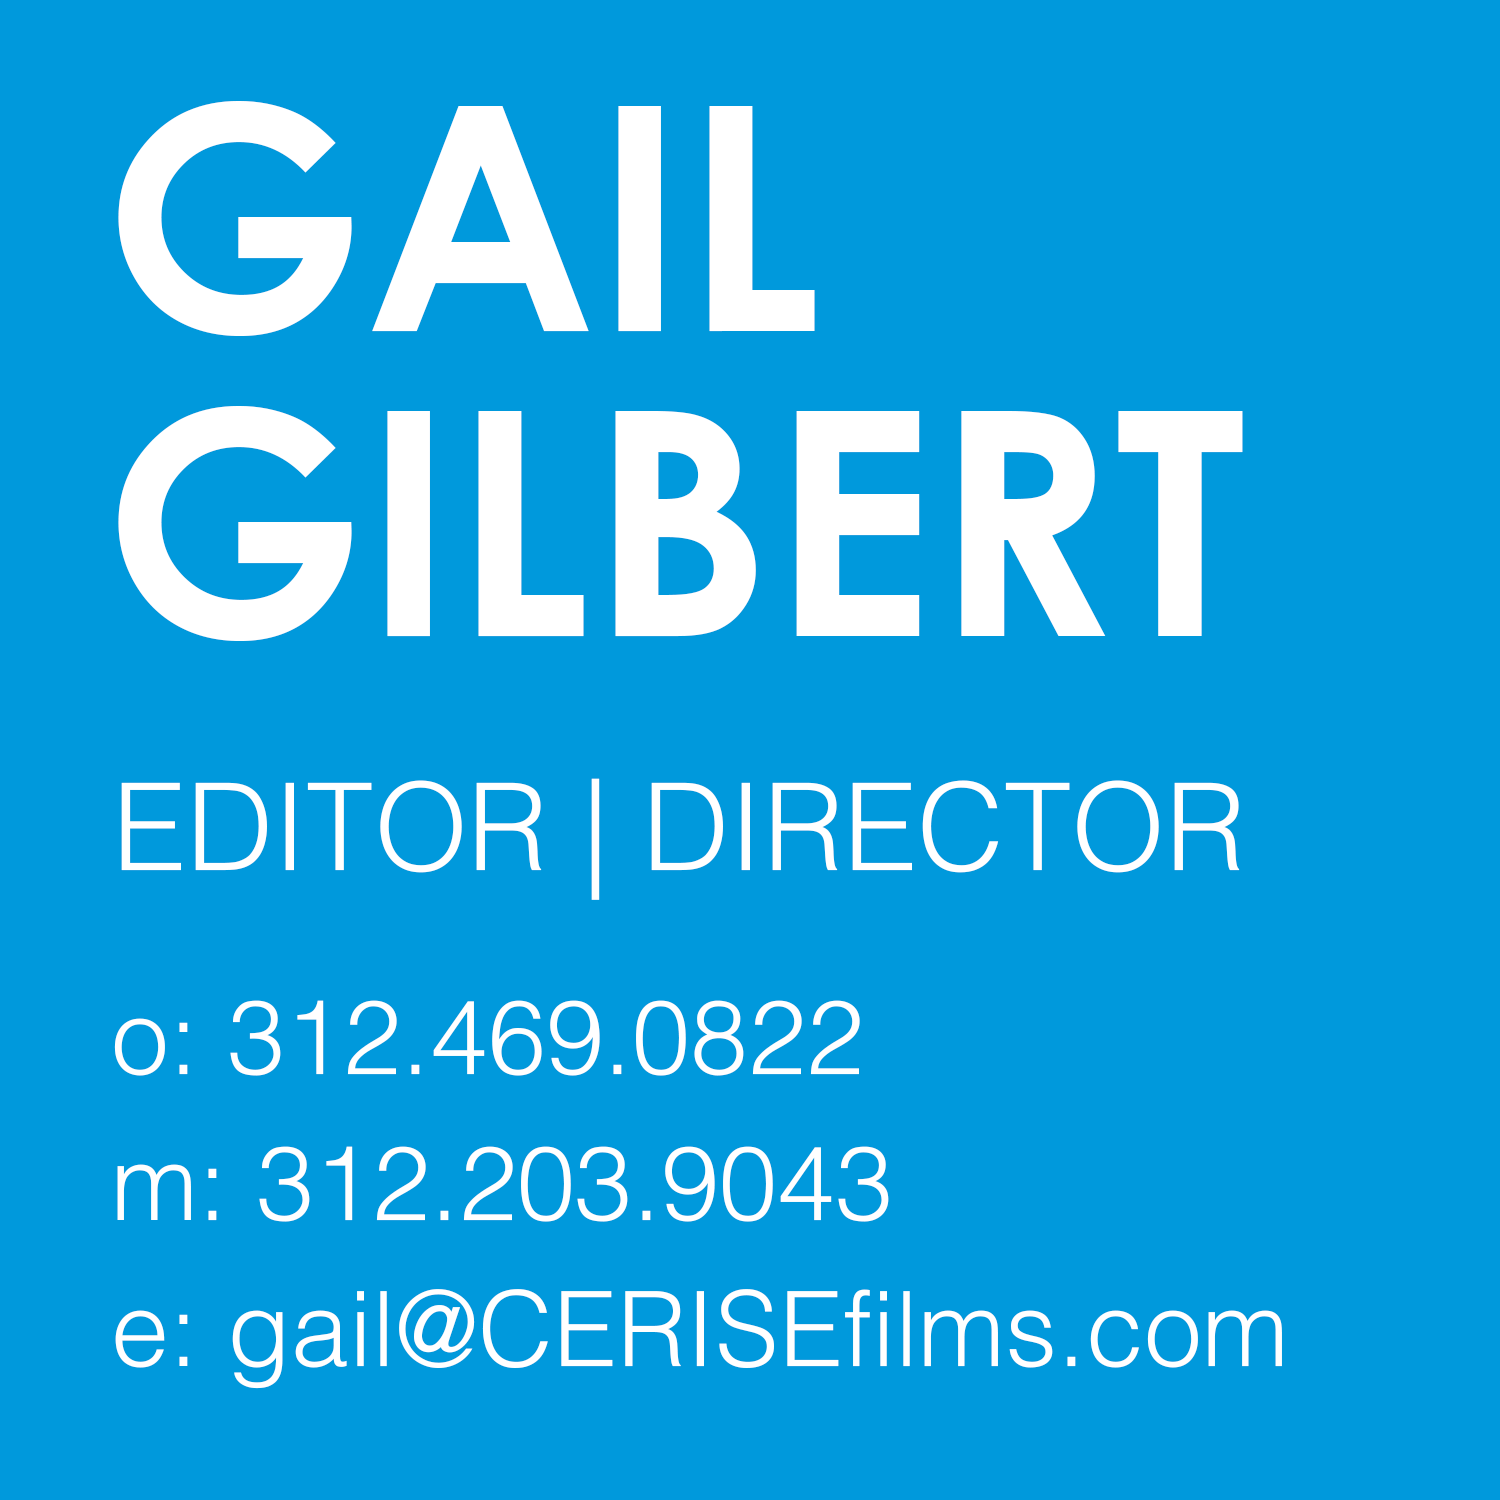 gail-website-contact-icons.png